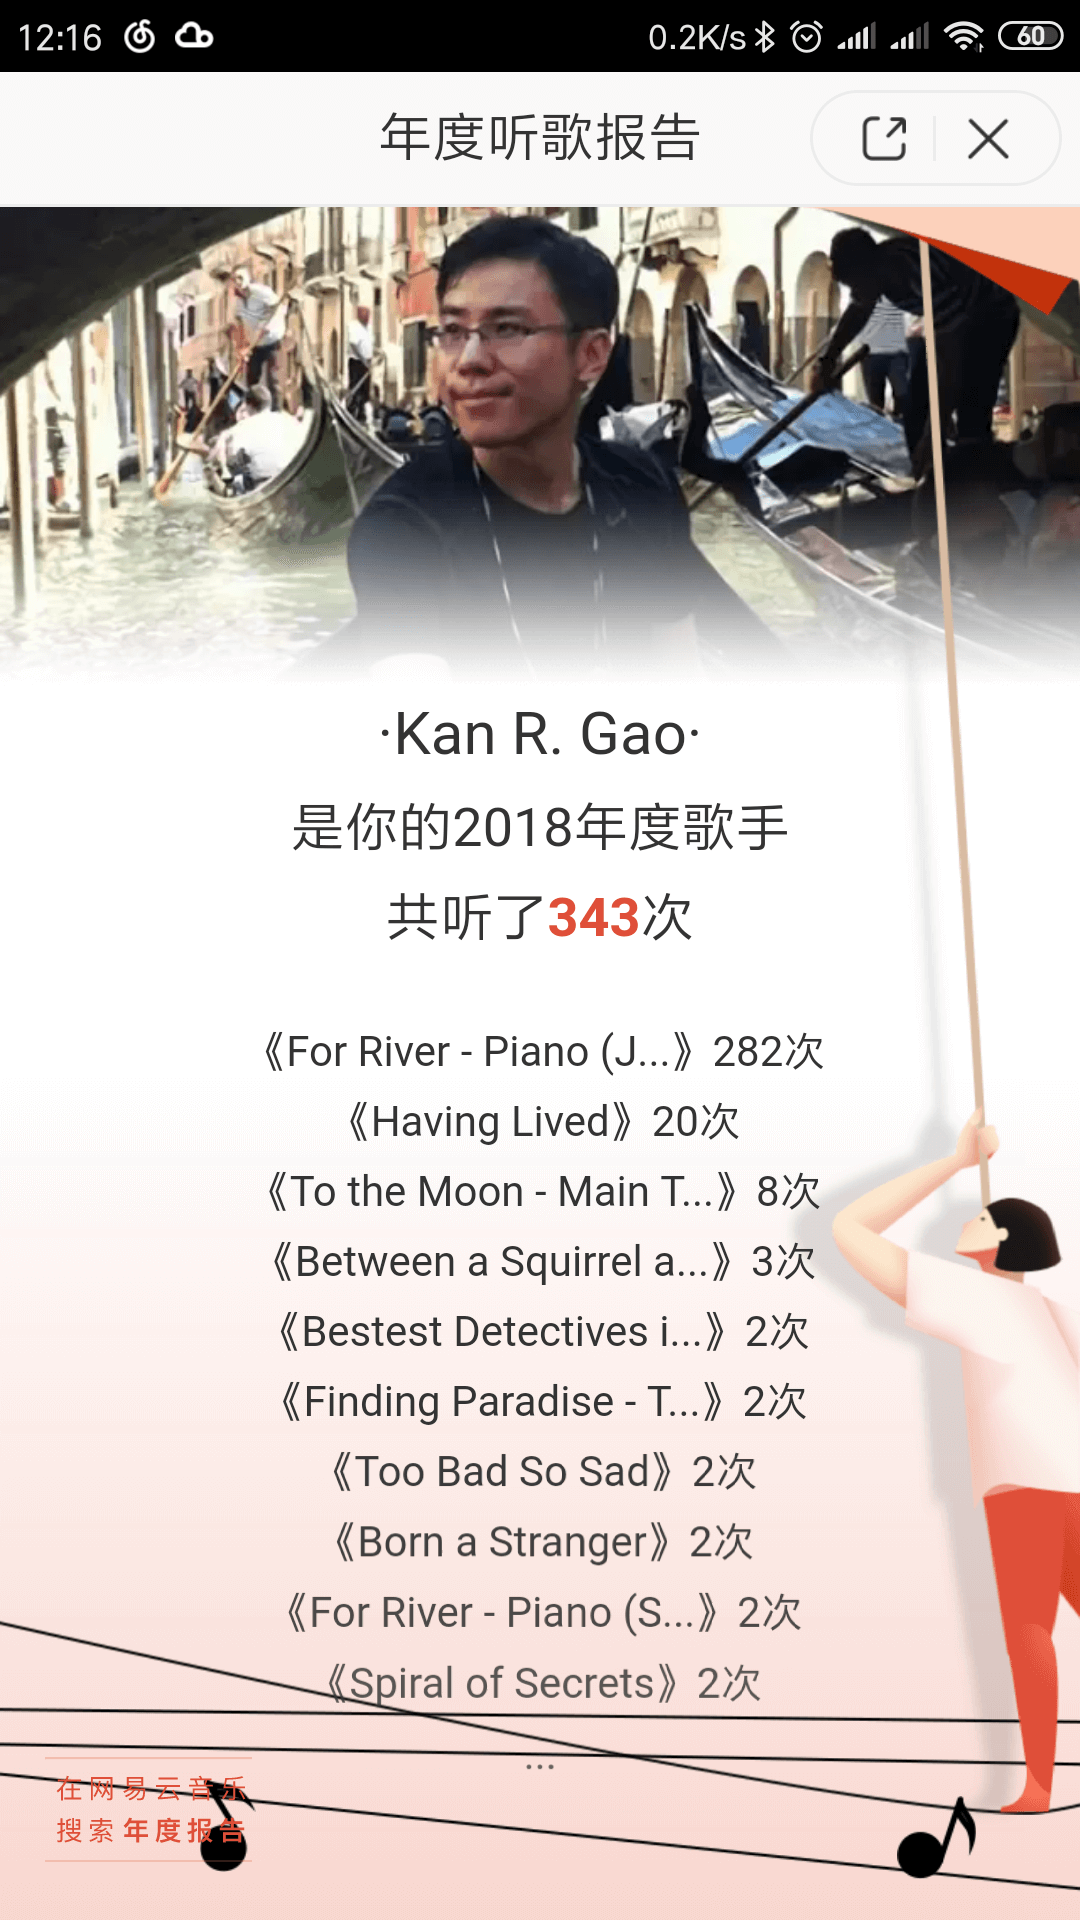 Screenshot_2019-01-04-12-16-03-155_com.netease.cloudmusic.png